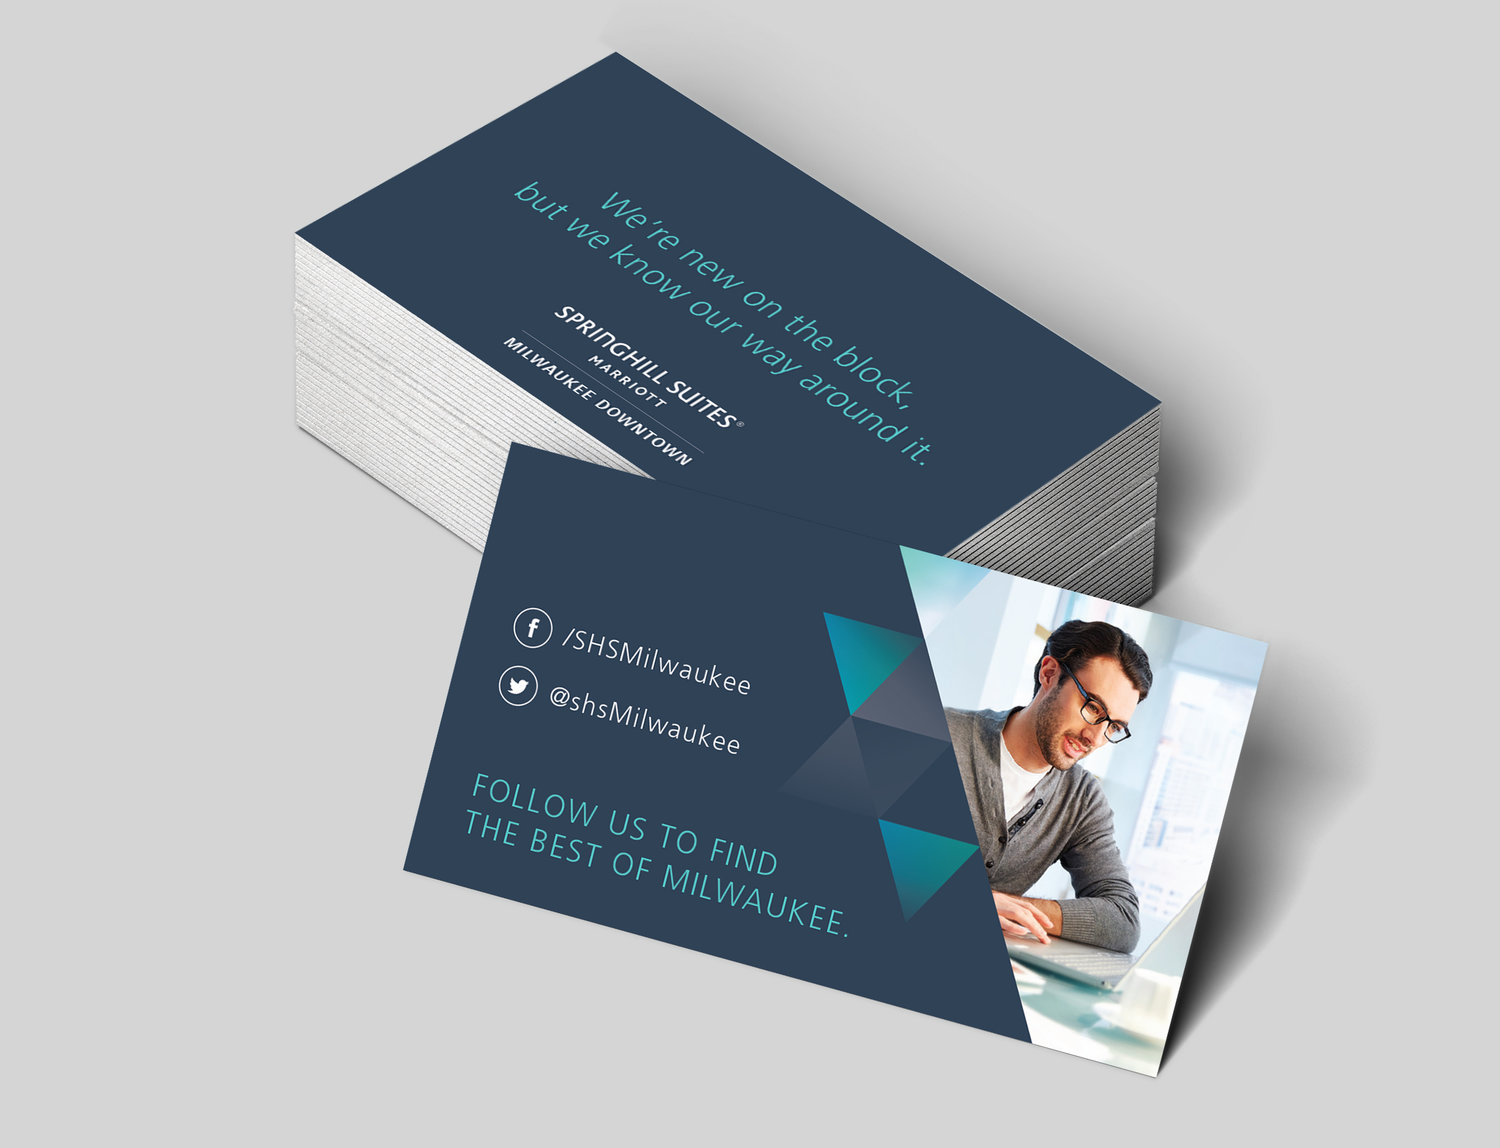 Springhill Suites Milwaukee Social Cards — Claire Meyer Design